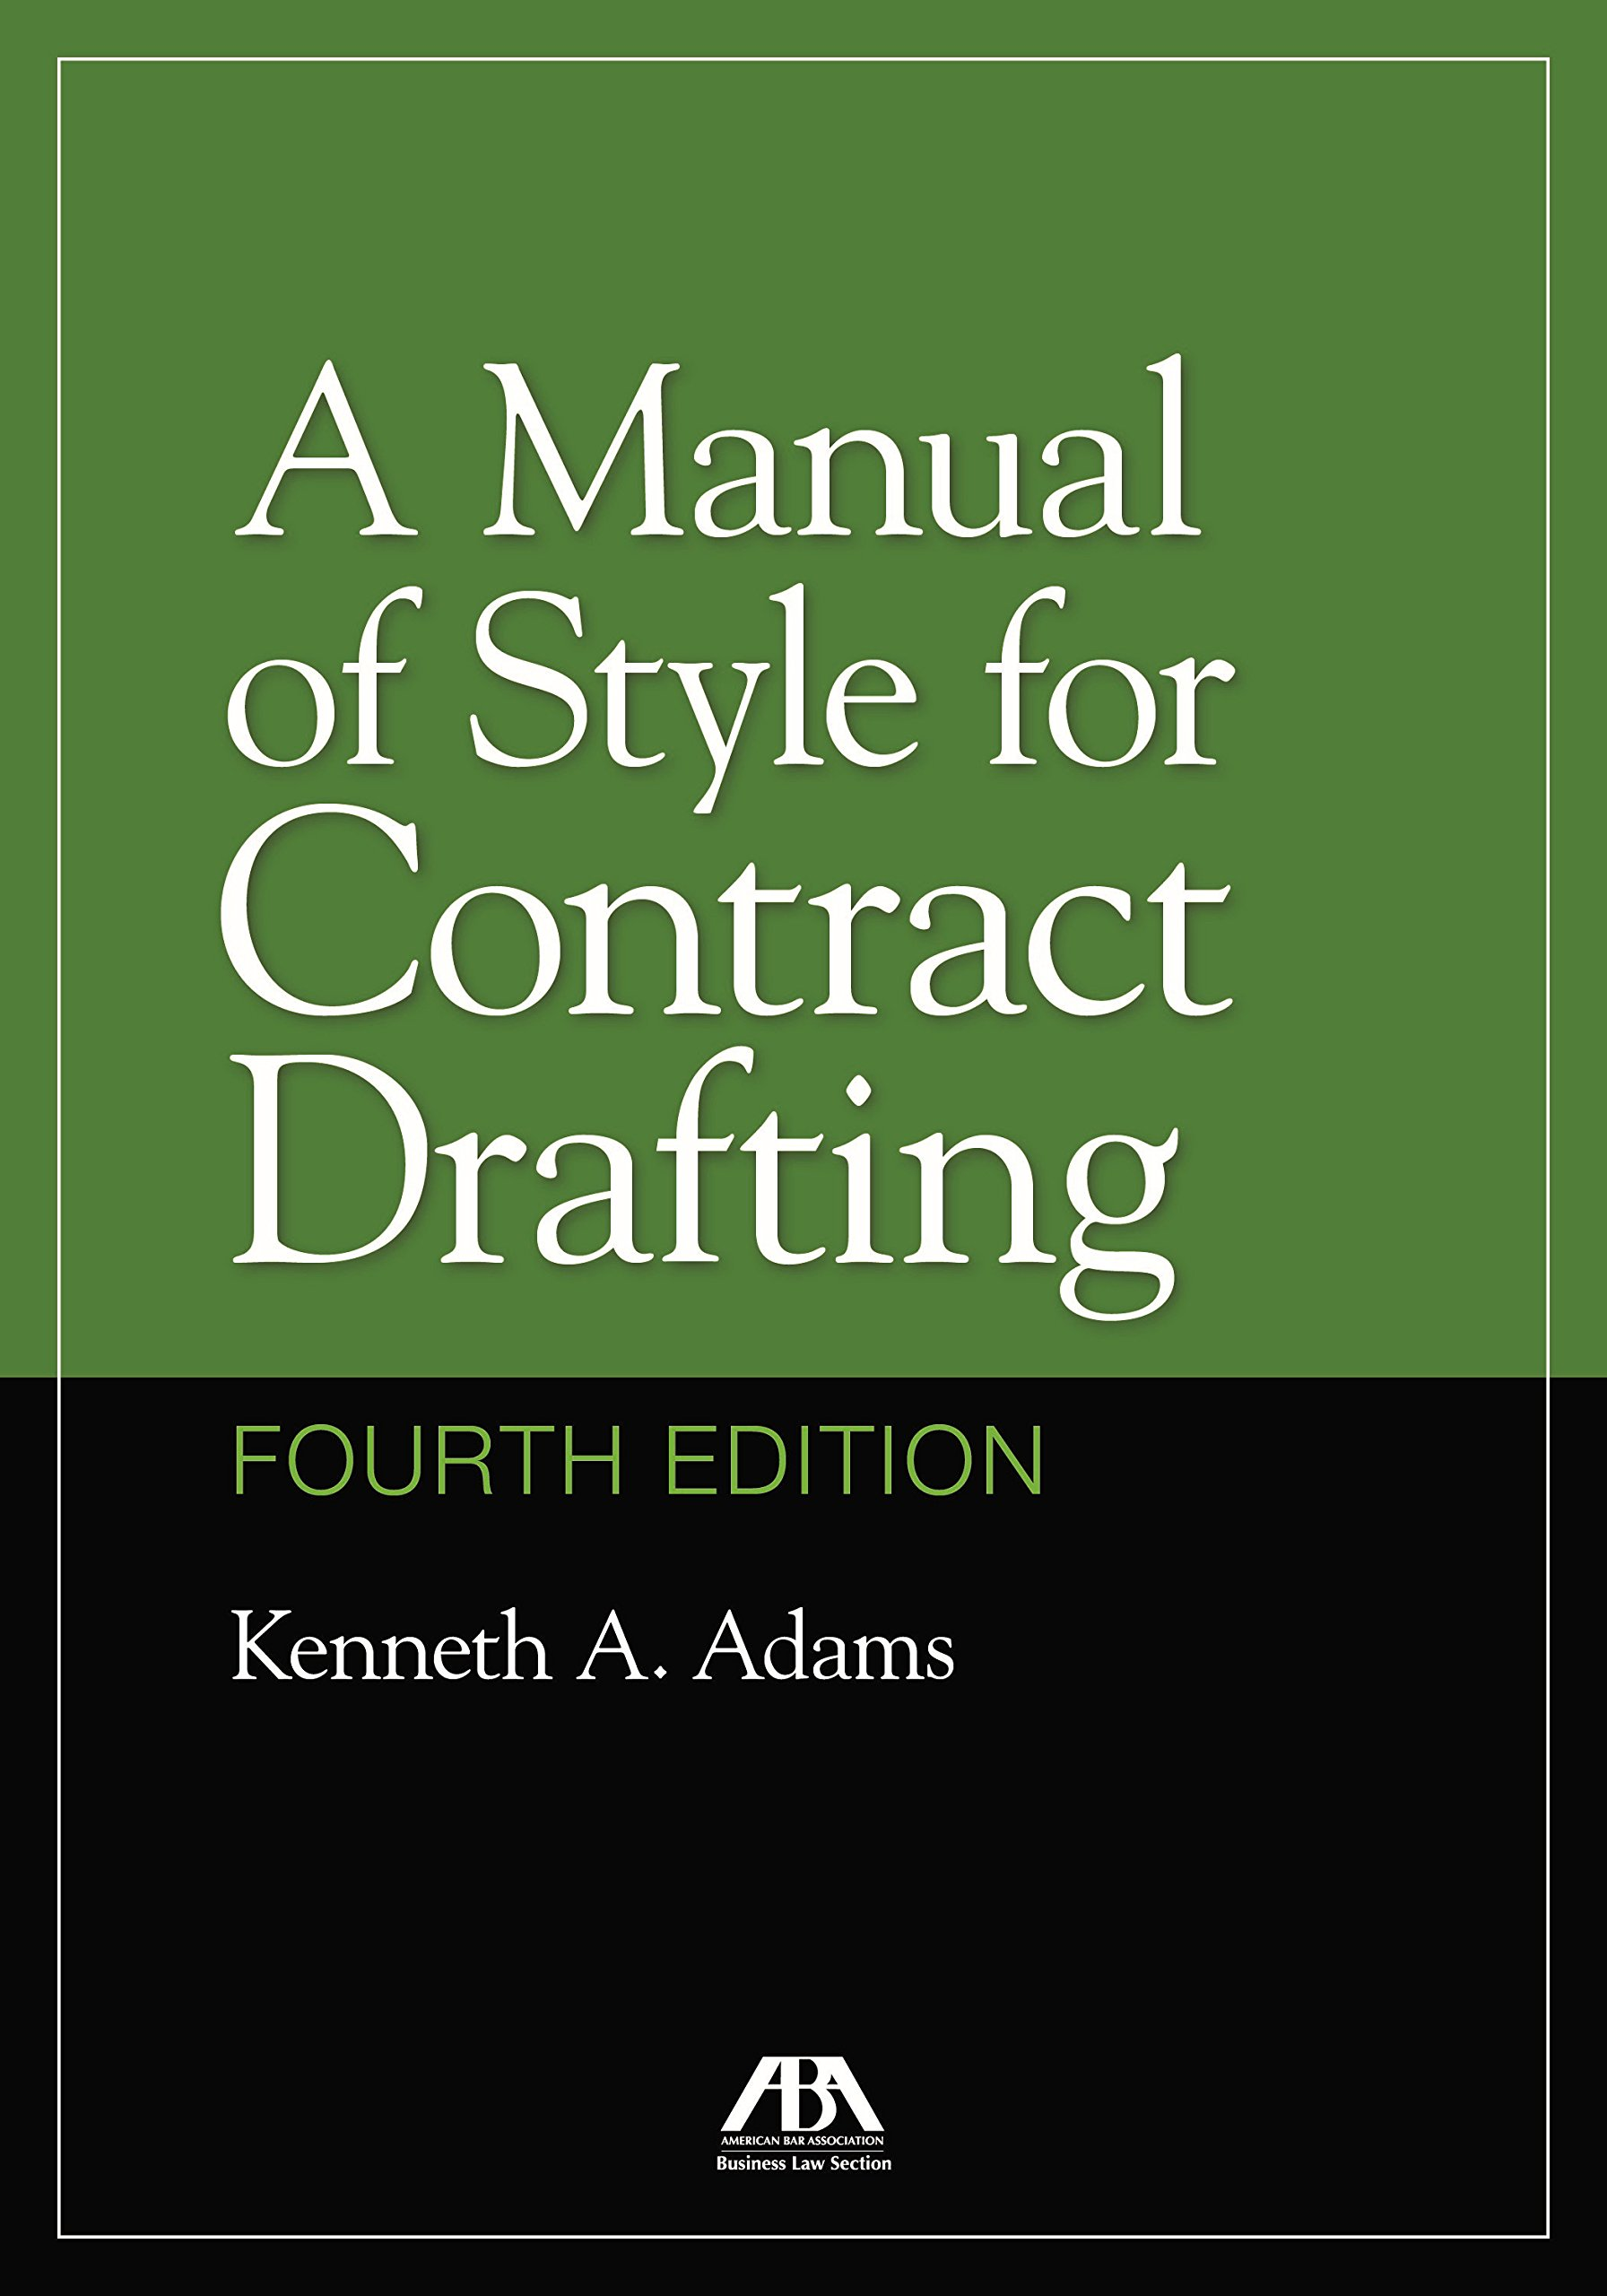 A Manual of Style for Contract Drafting by American Bar Association